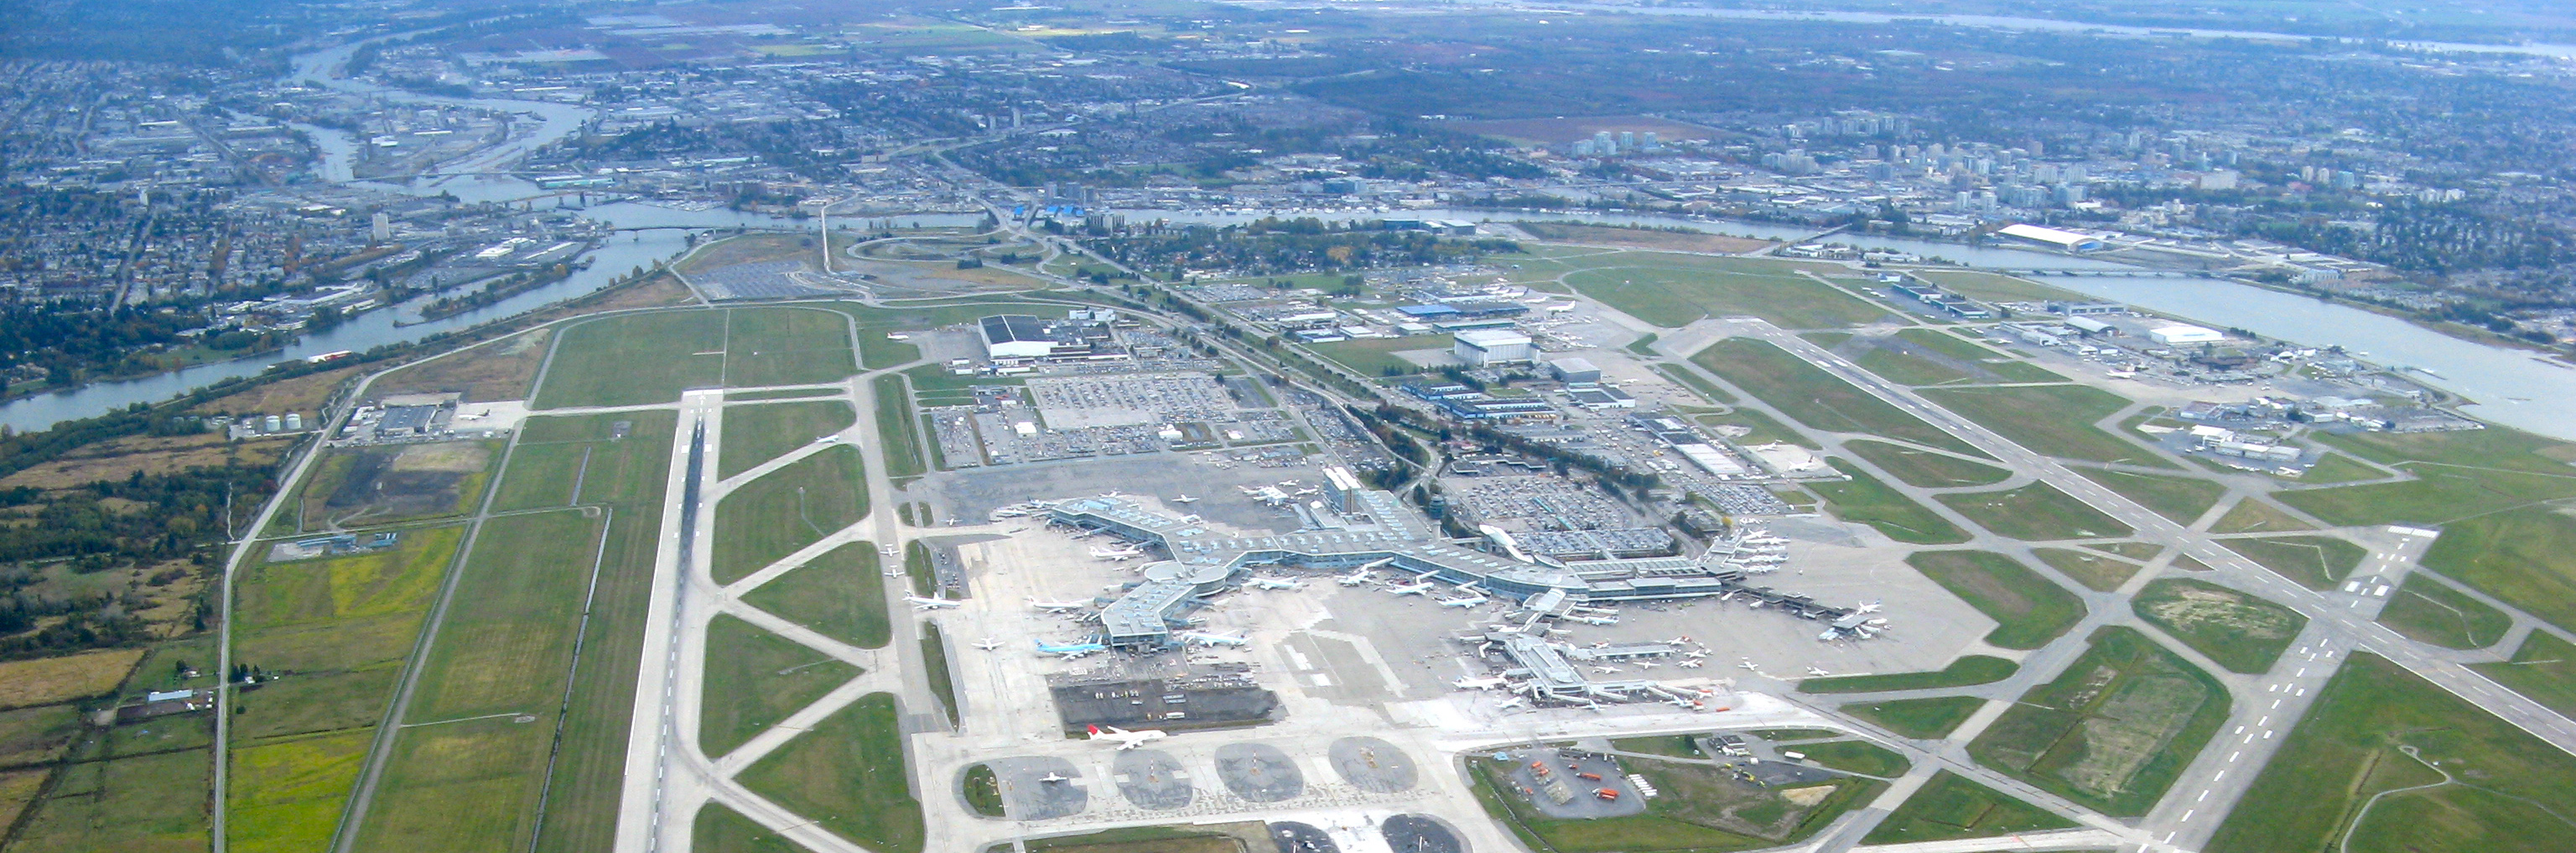 Vancouver_International_Airport_Aerial1